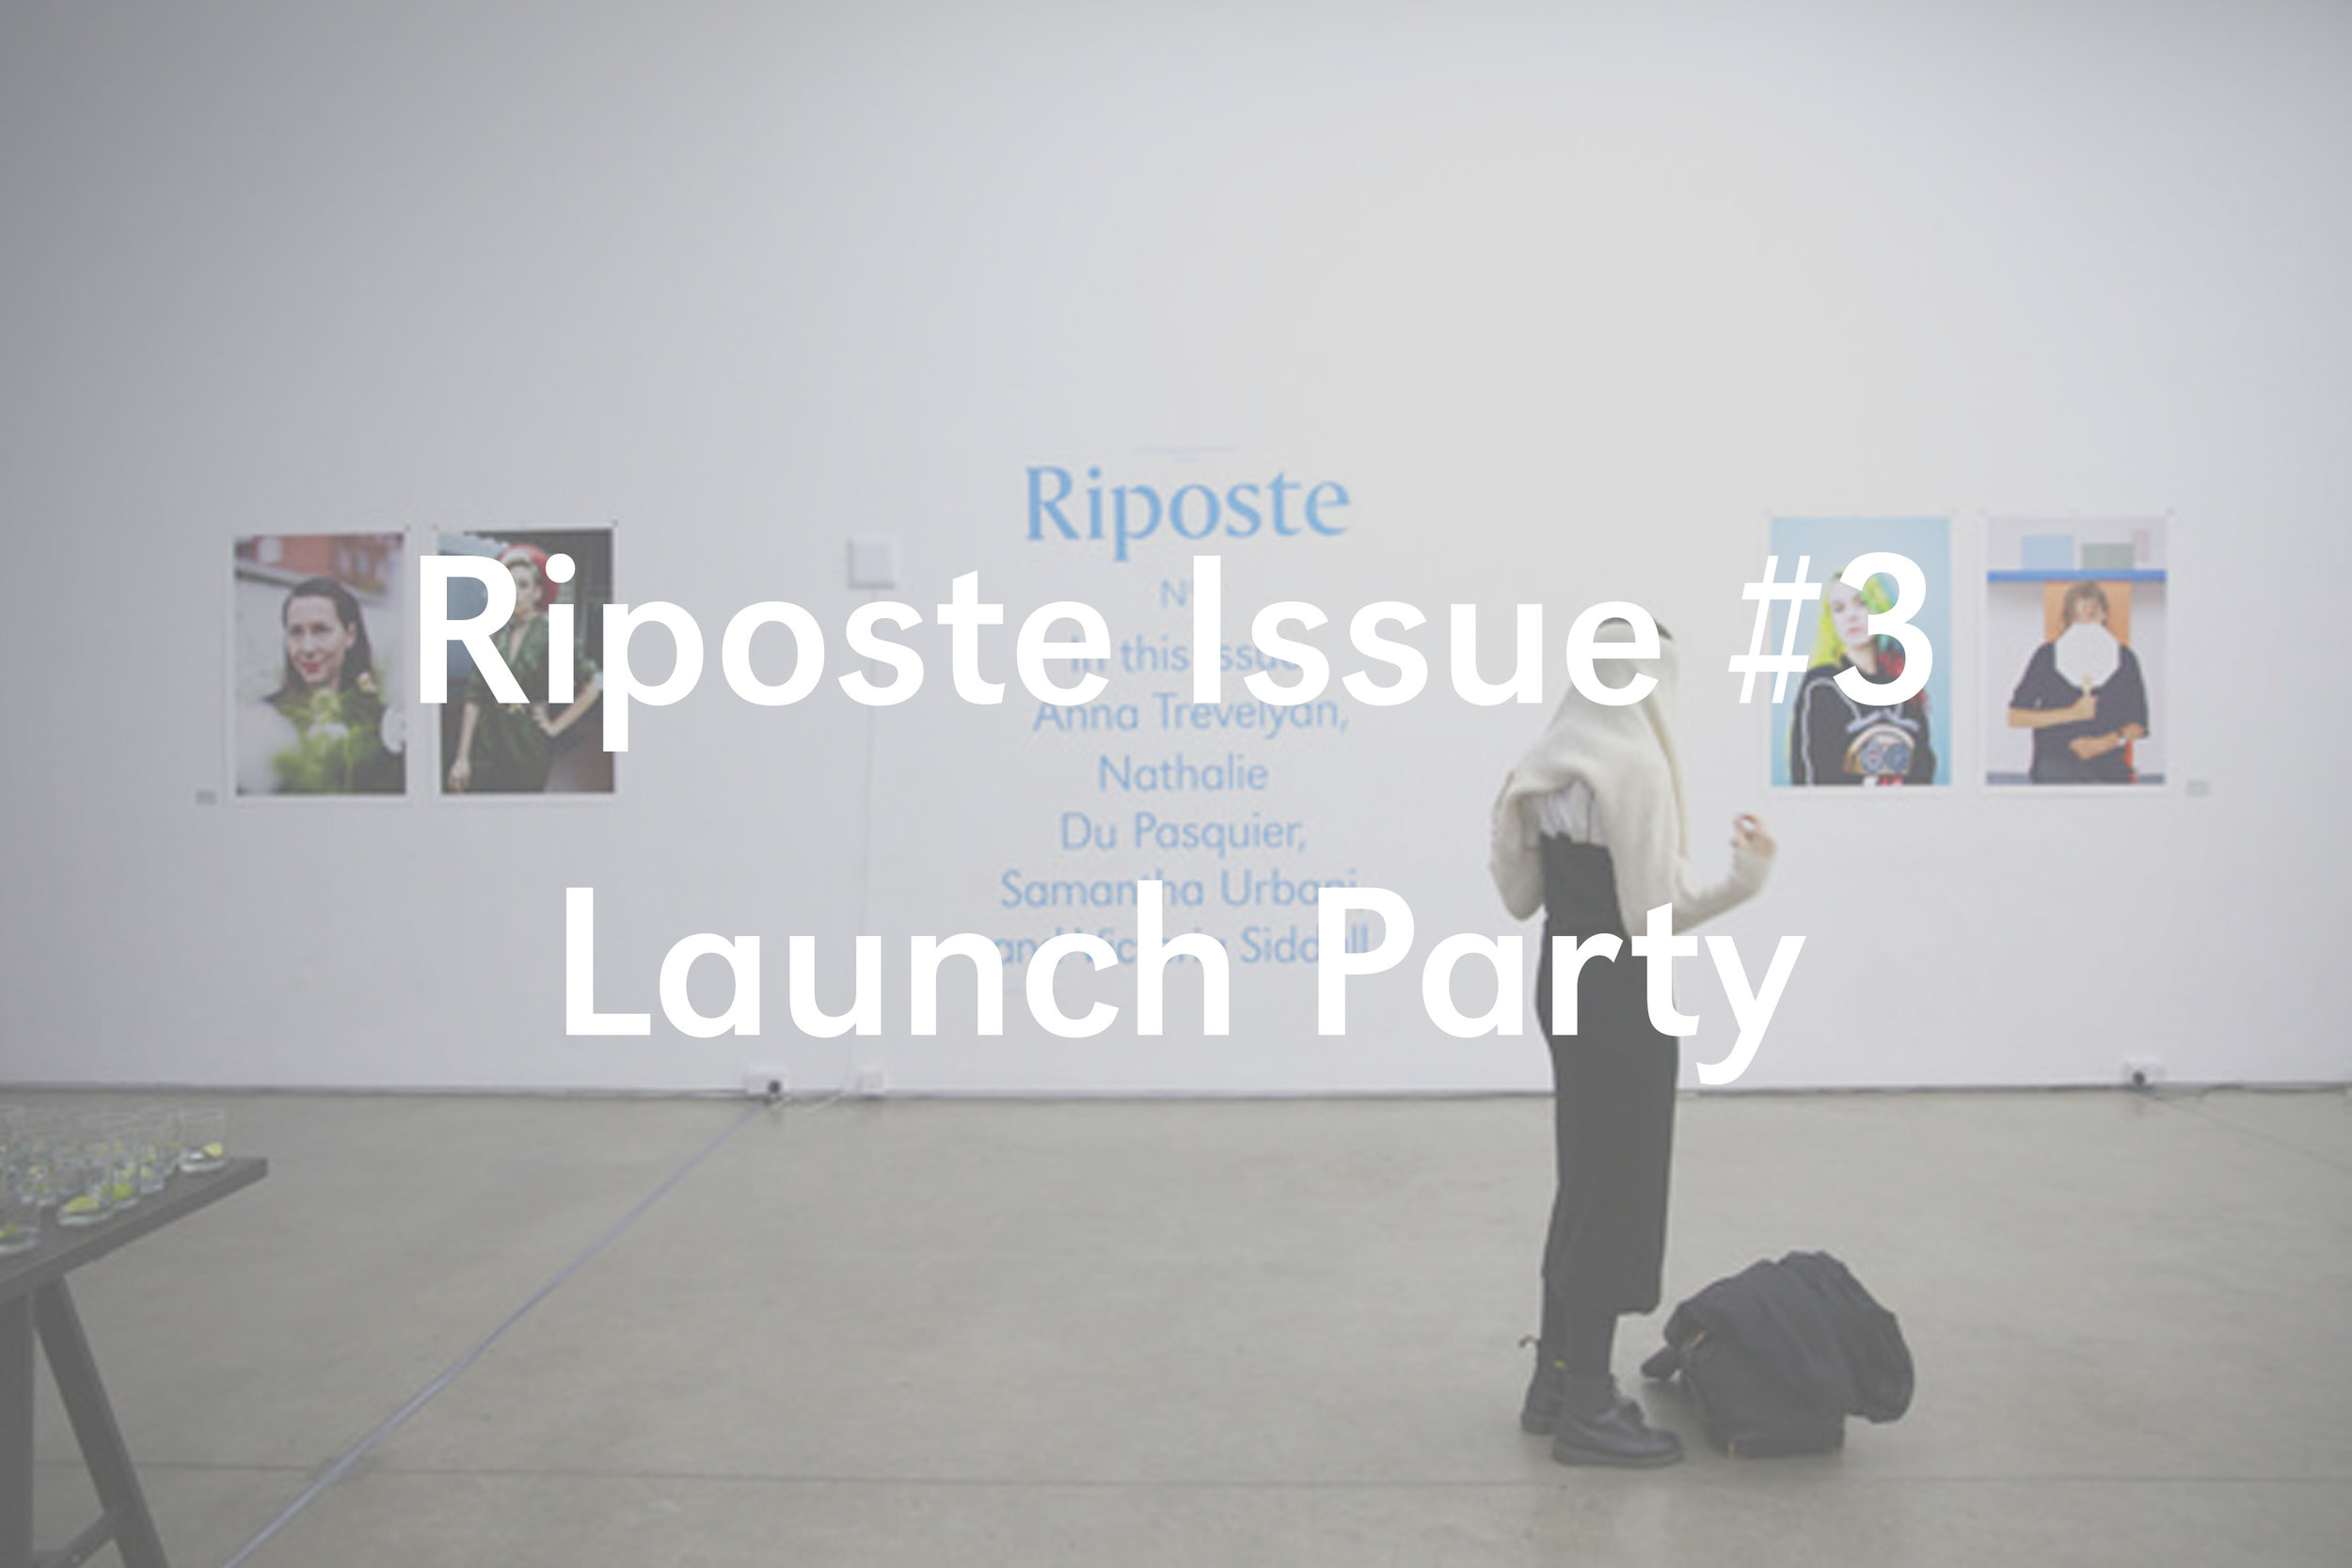 Riposte Issue #3 Launch